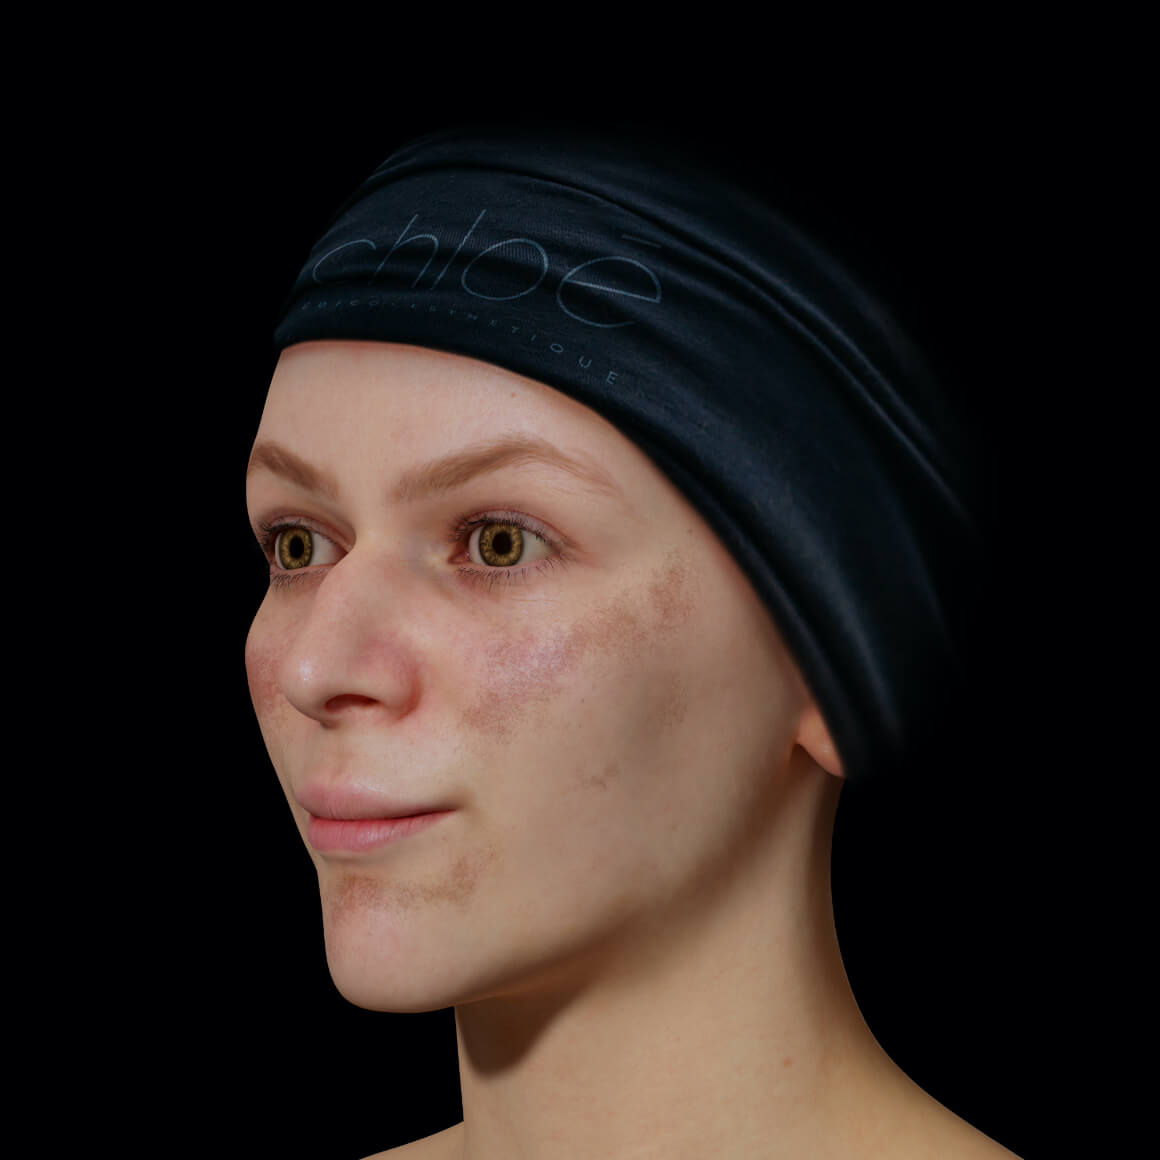 Clinique Chloé female patient positioned at an angle with melasma on her face